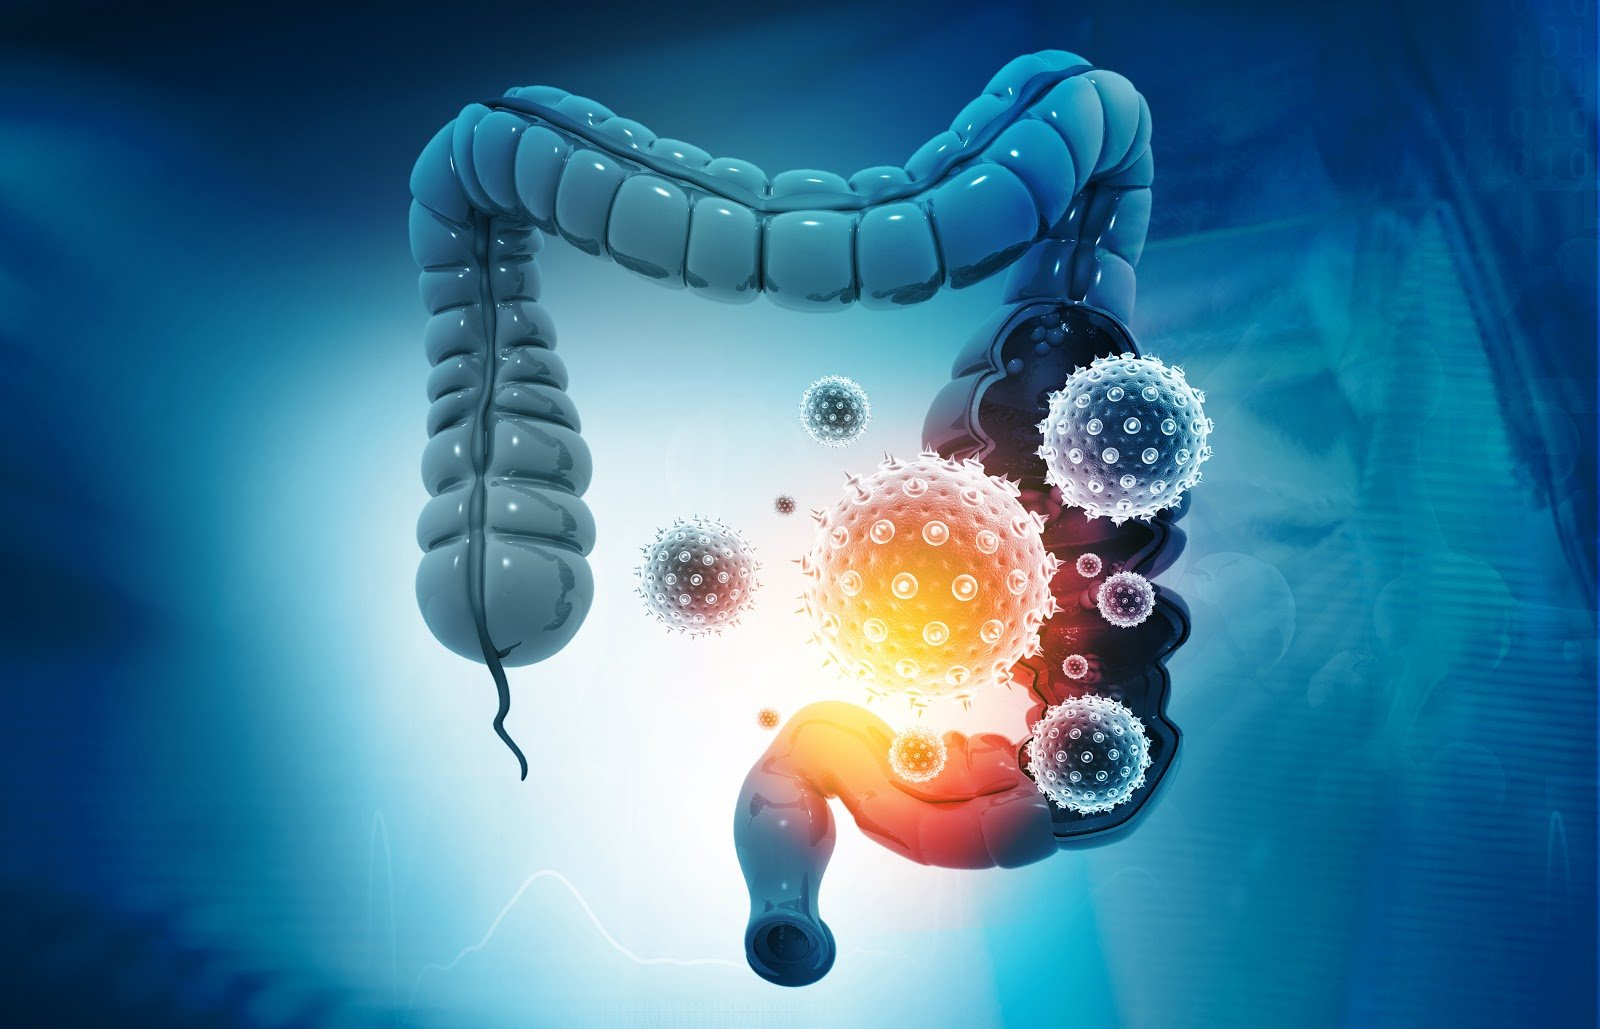 Soil-based probiotics: 3D illustration of intestines with bacteria and viruses